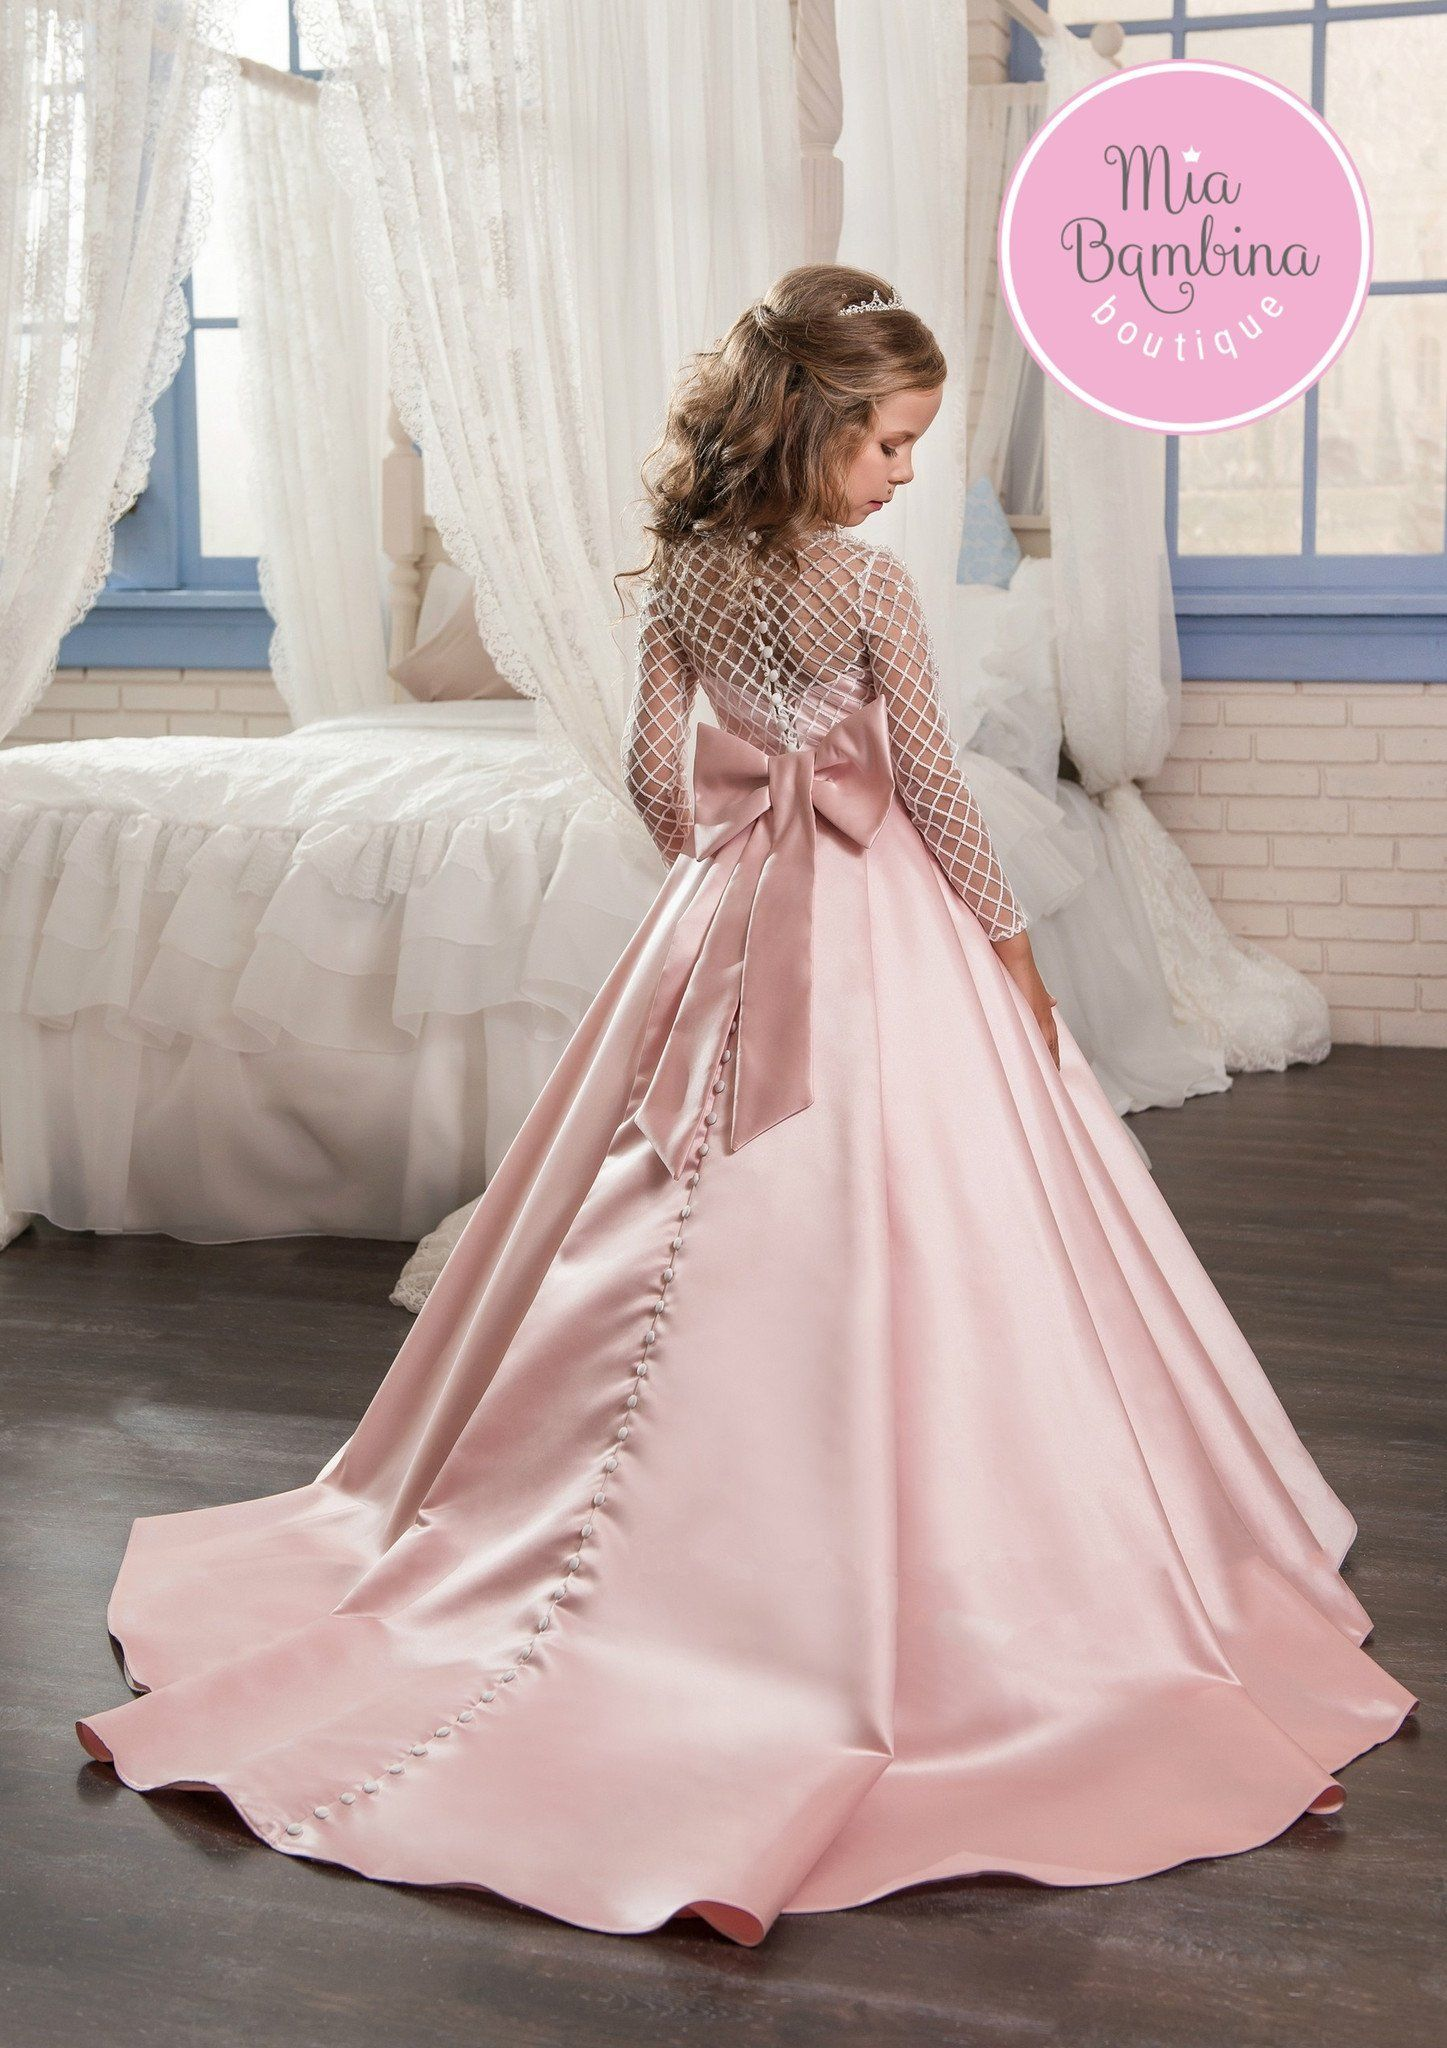 This chic Toronto flower girl dress is a long satin ball